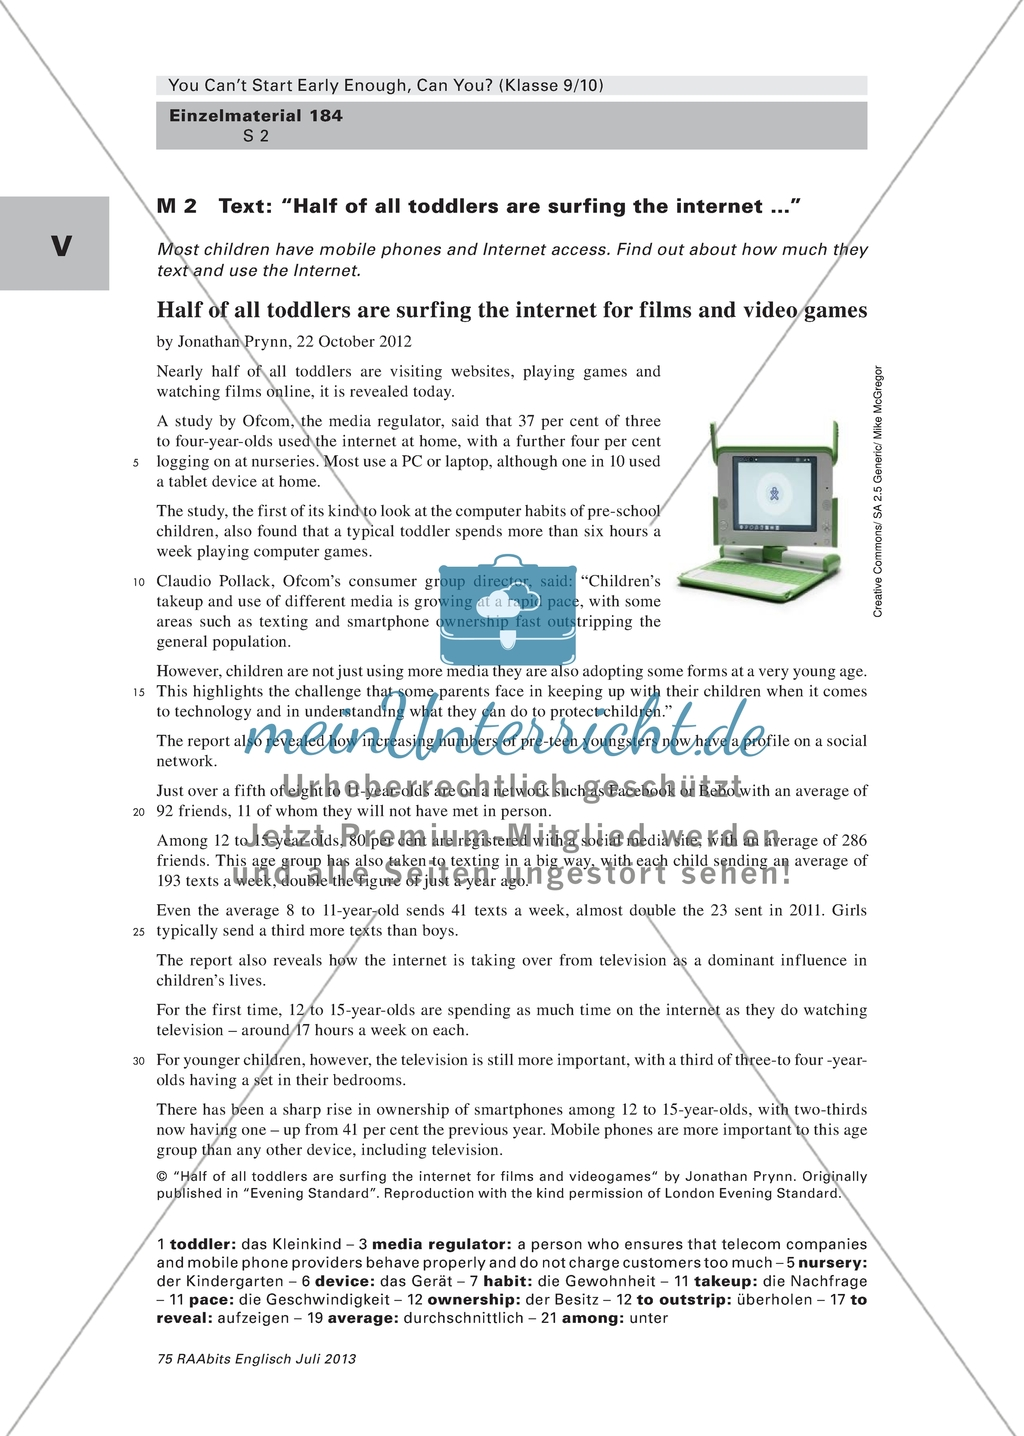 Media Use Reading A Newspaper Article And Answering